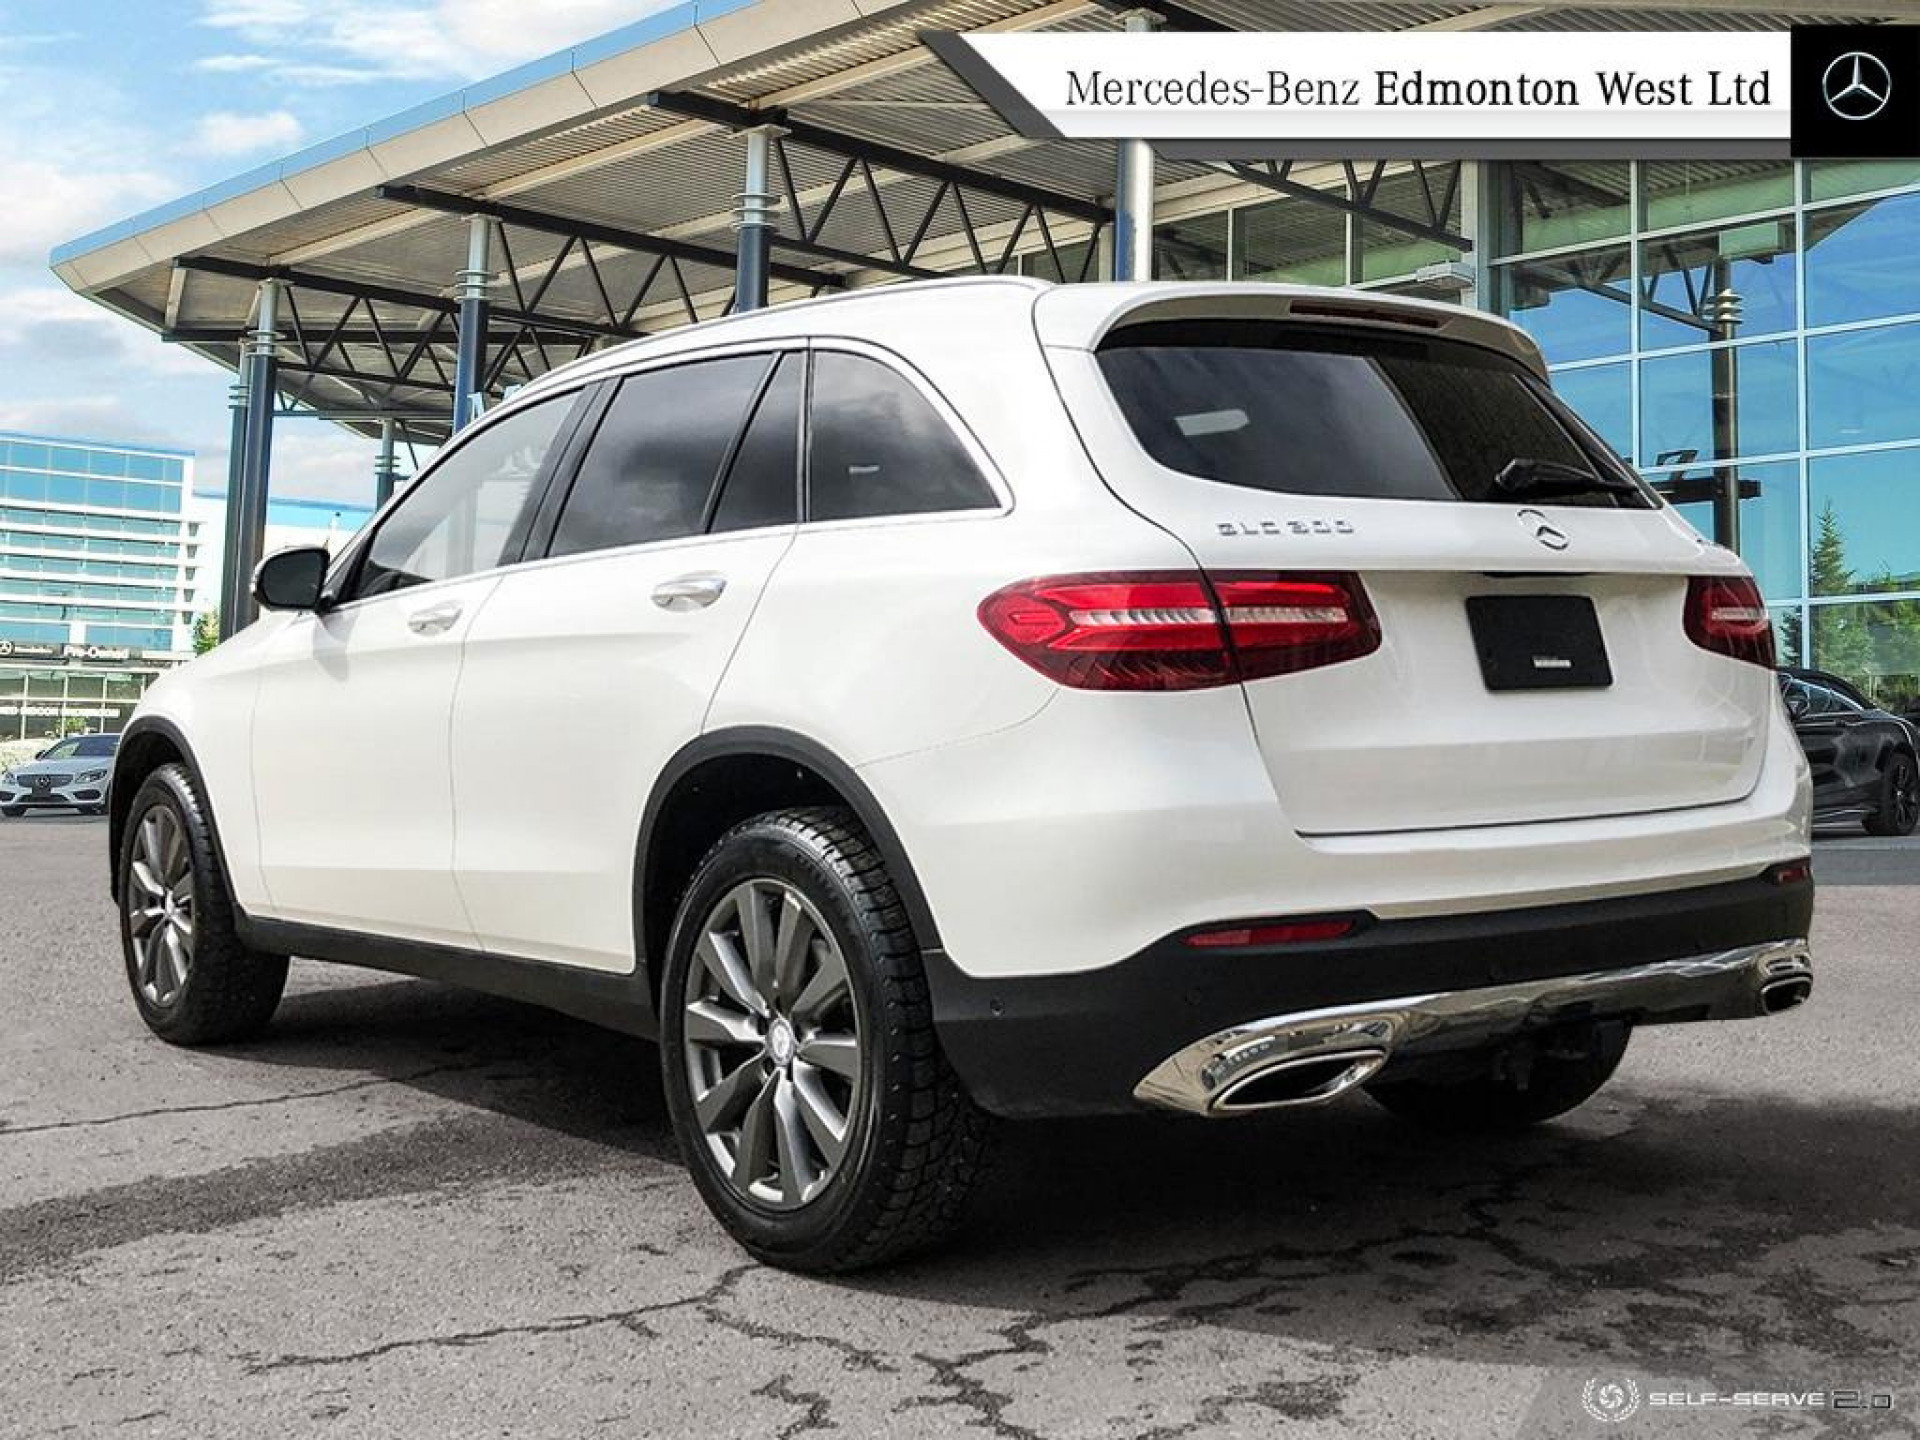 Certified Pre-Owned 2016 Mercedes Benz GLC-Class GLC 300 4MATIC Star Certified Vehicle, One Owner, Premium Package, Intelligent Drive, Heated Steering